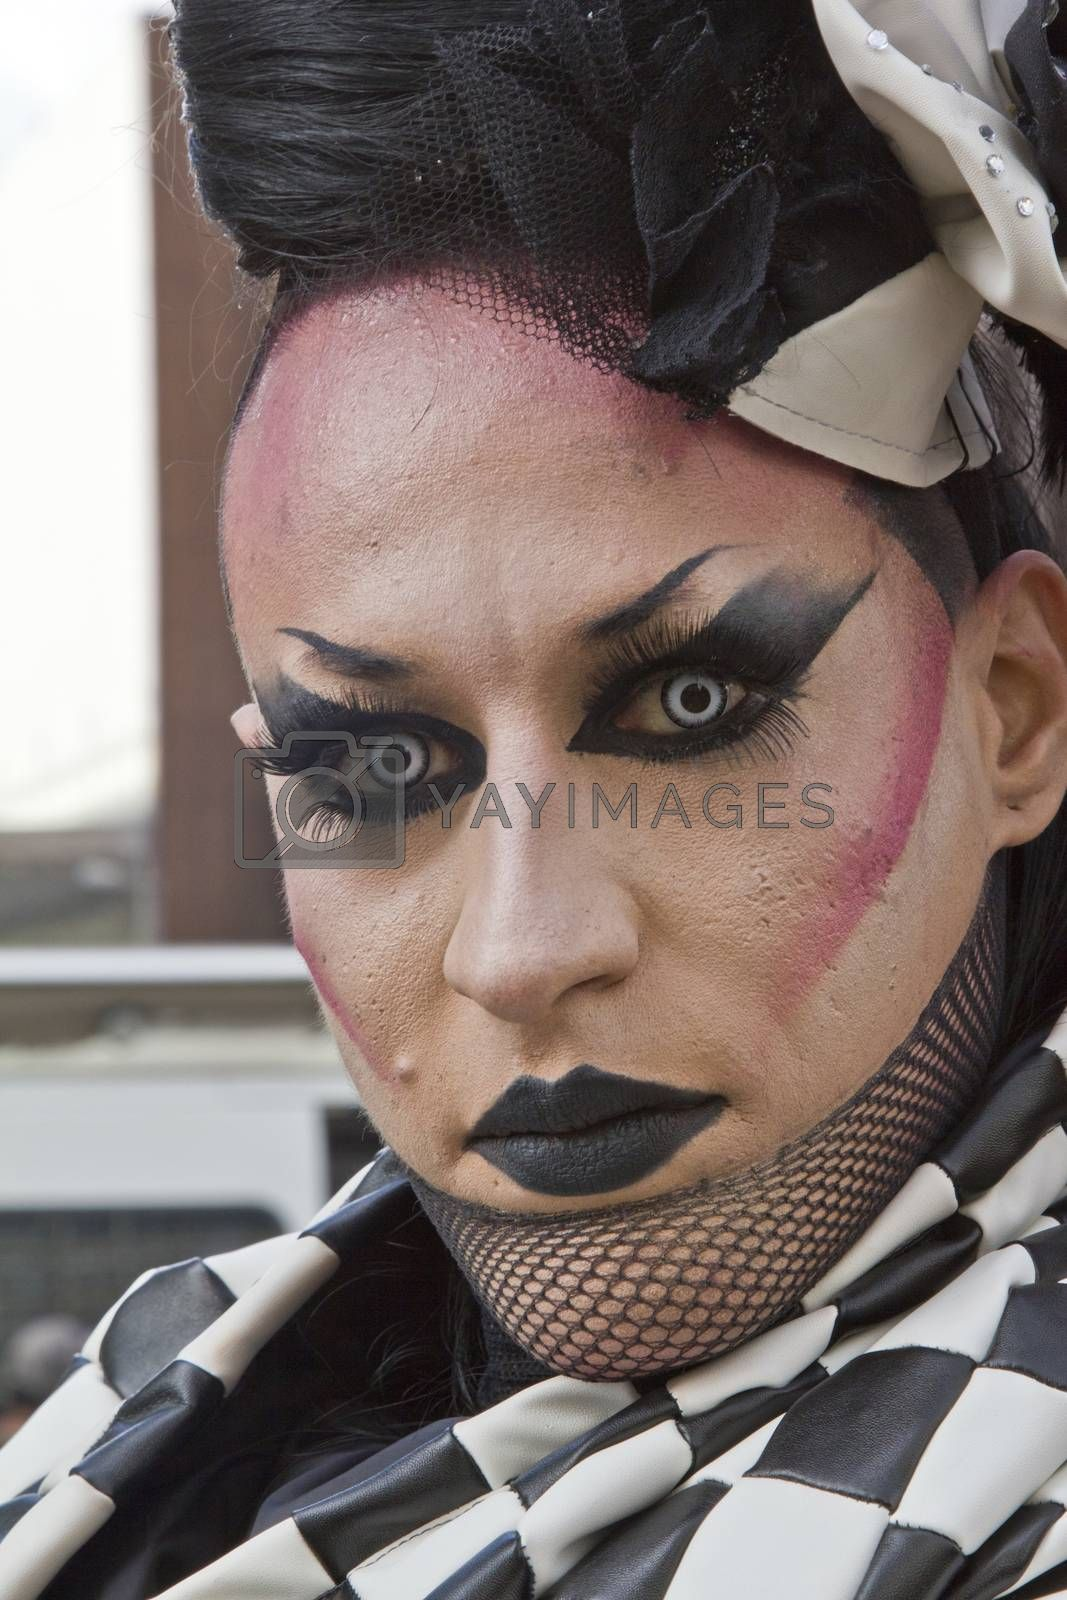 SAO PAULO, BRAZIL - June 7, 2015: An unidentified Drag Queen dressed in traditional costume celebrating lesbian, gay, bisexual, and transgender culture in the 19� Pride Parade Sao Paulo.